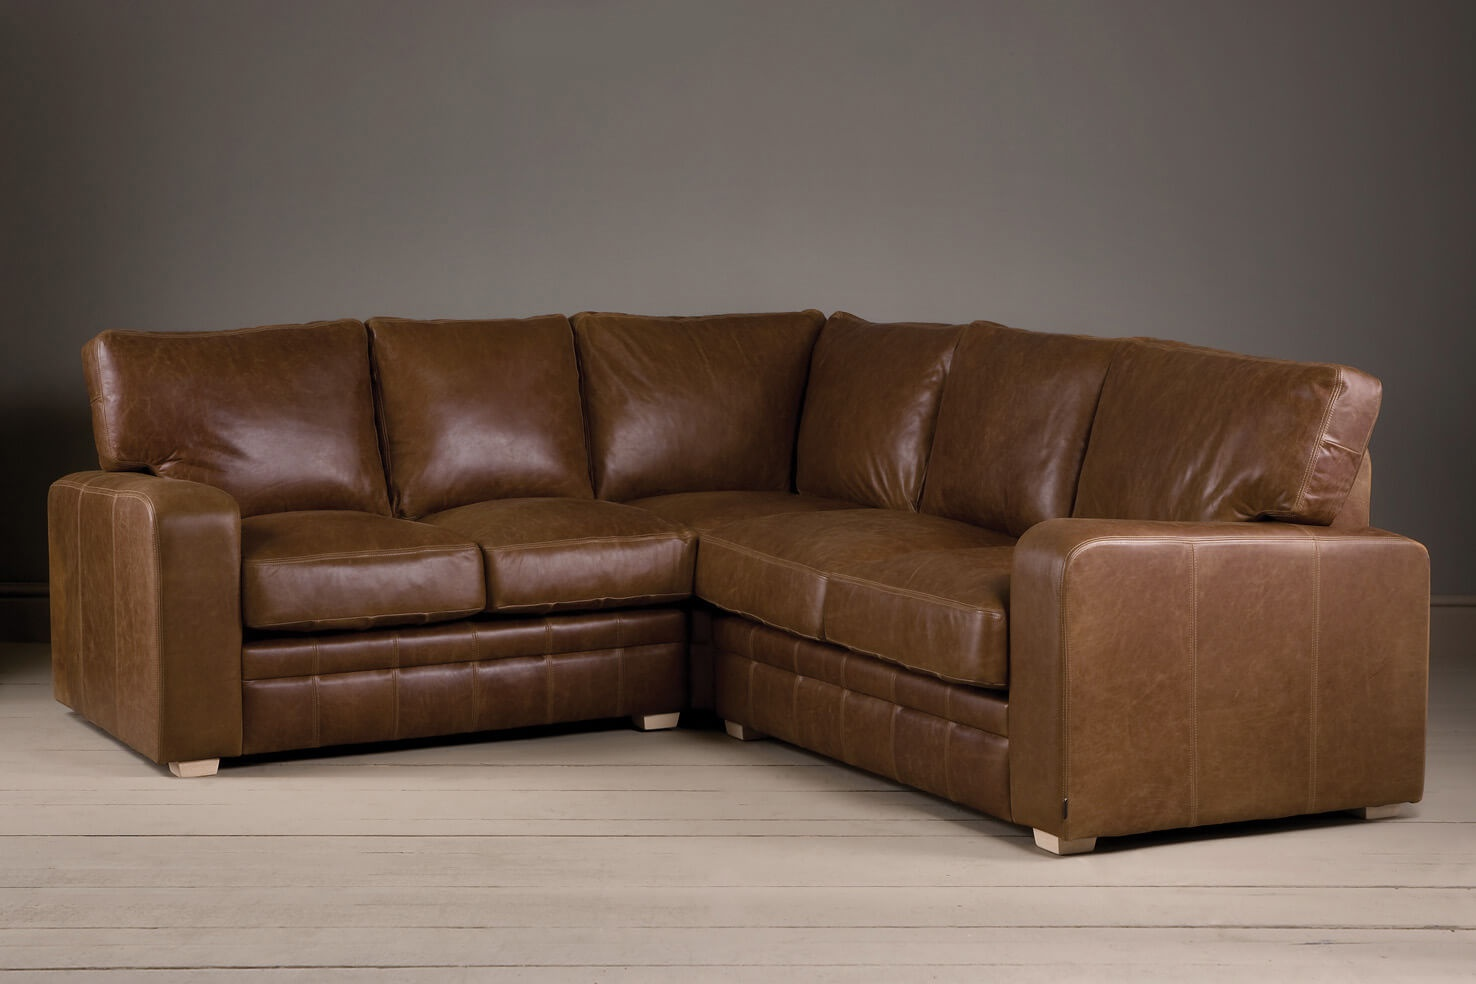 Leather corner sofa-a style statement in your home